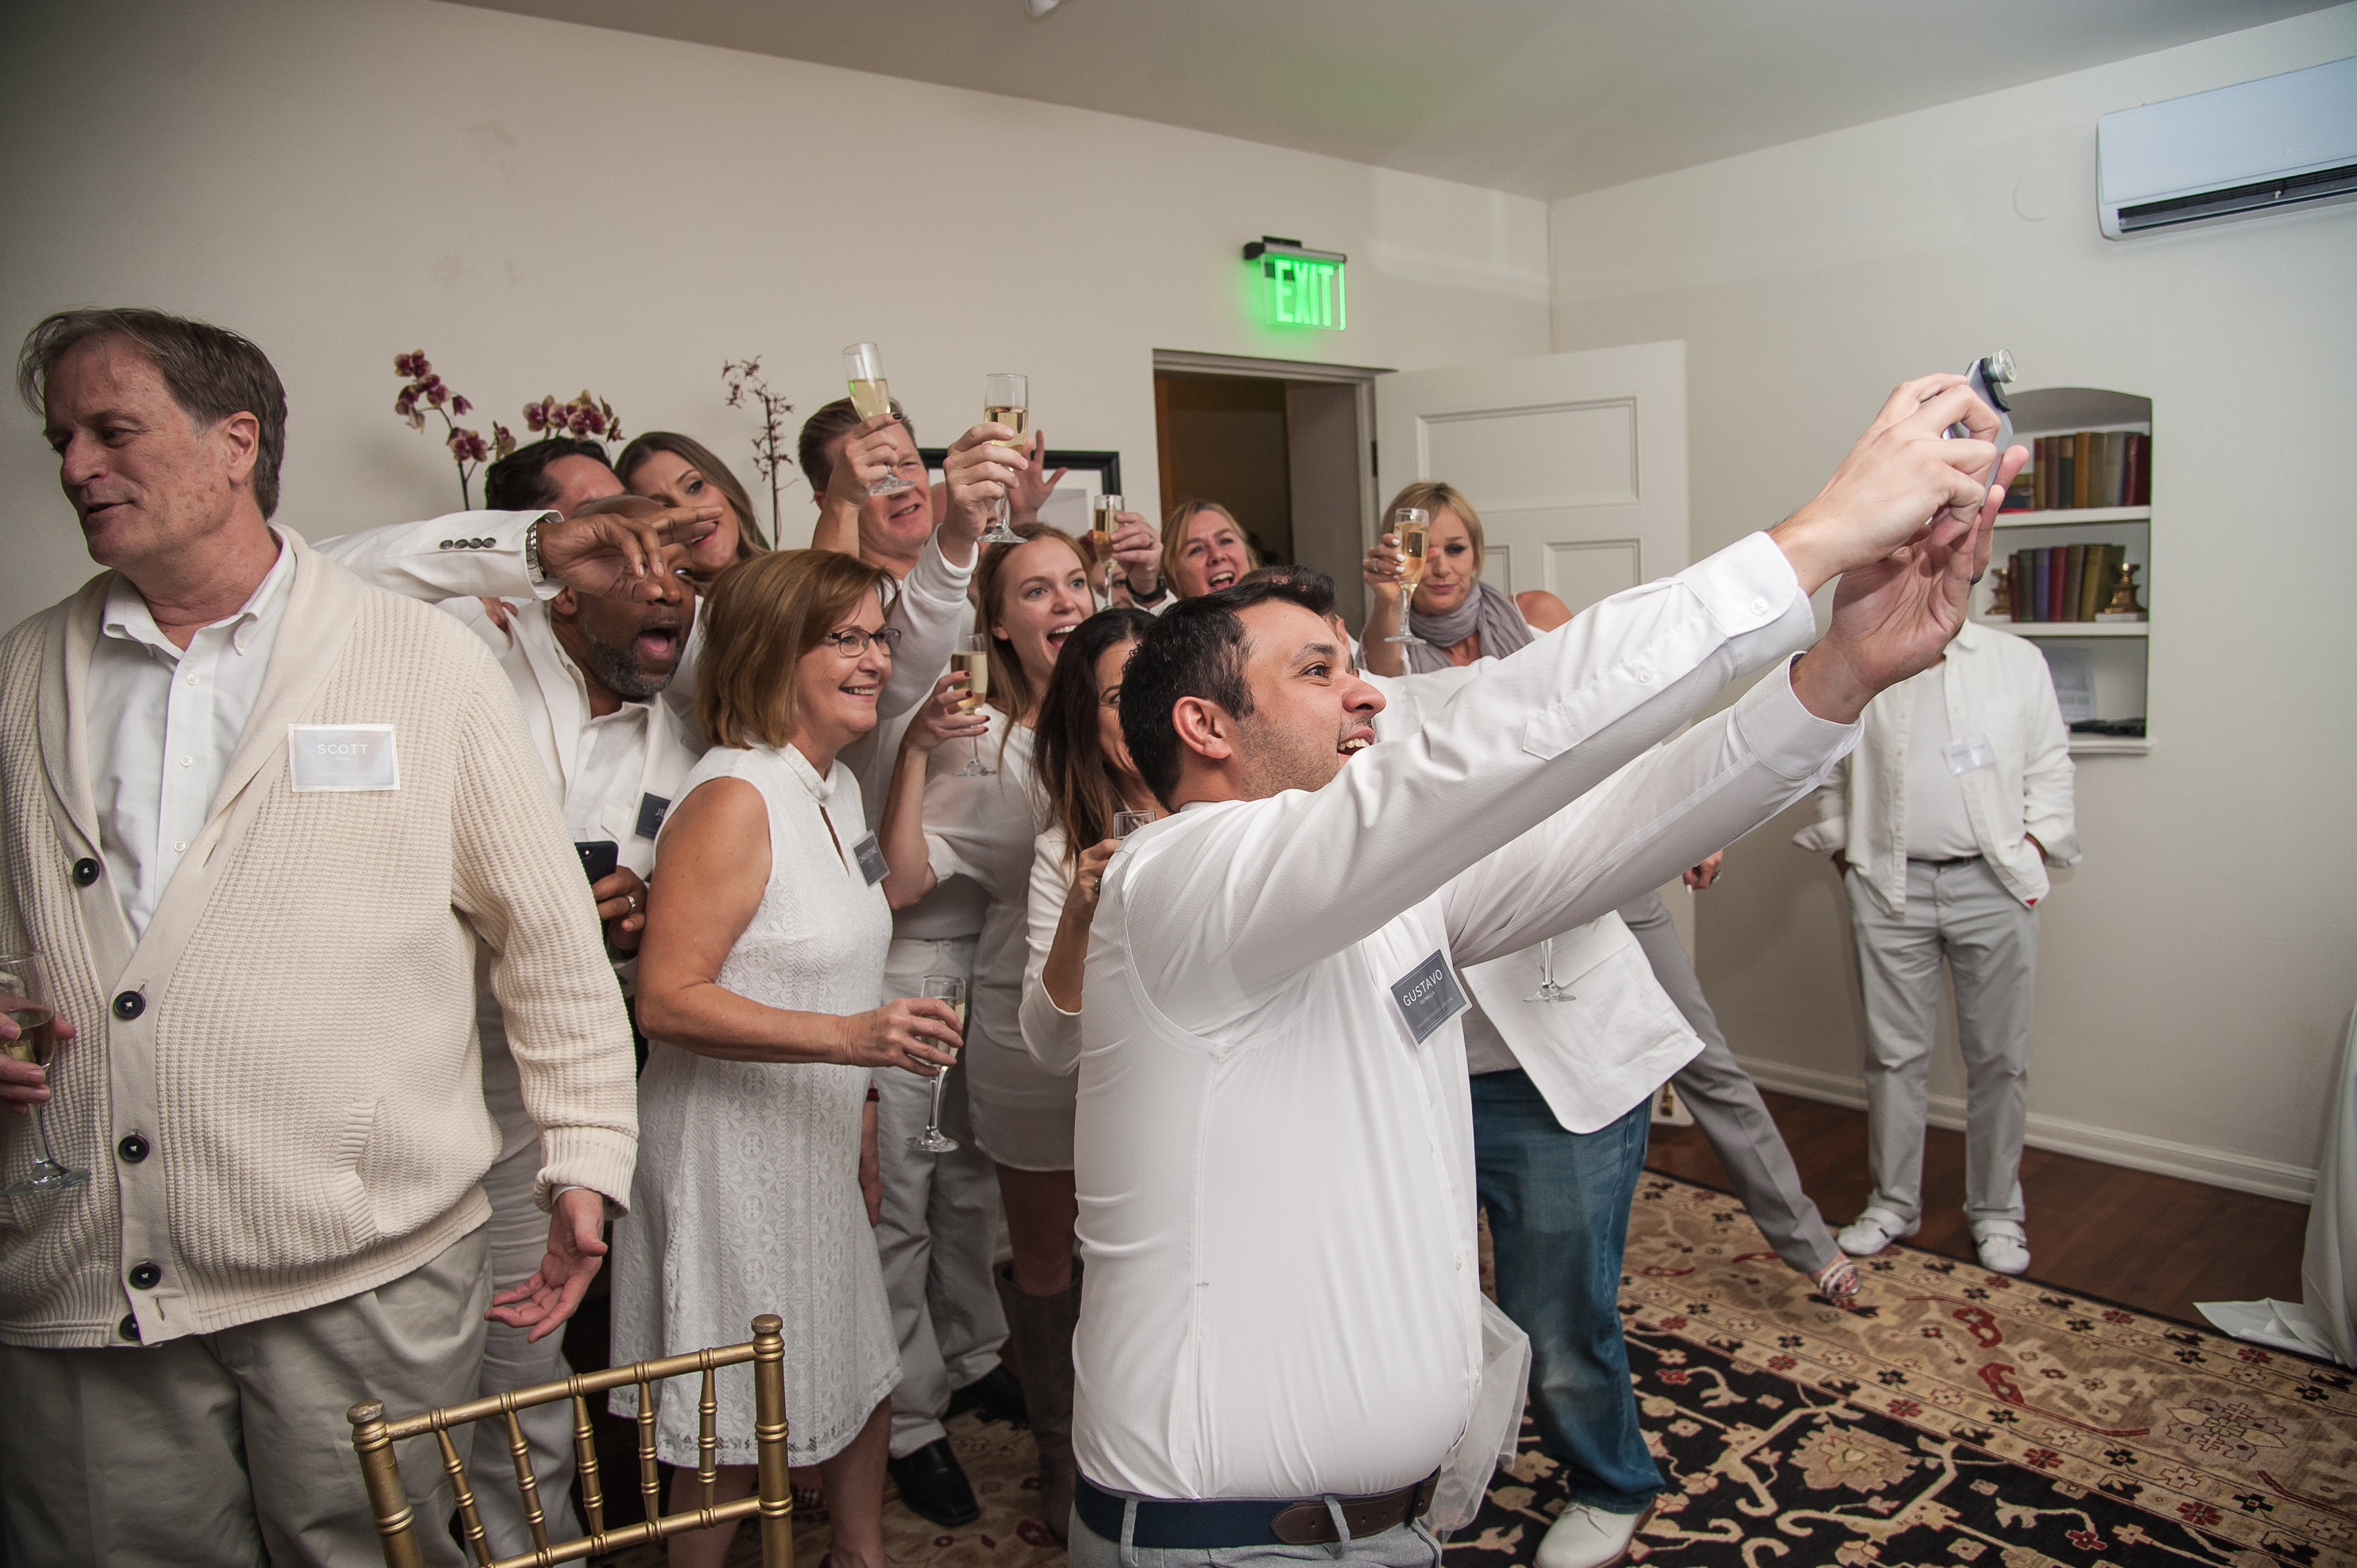 DSC_8158 White Space Party Puts 2017 Into Focus